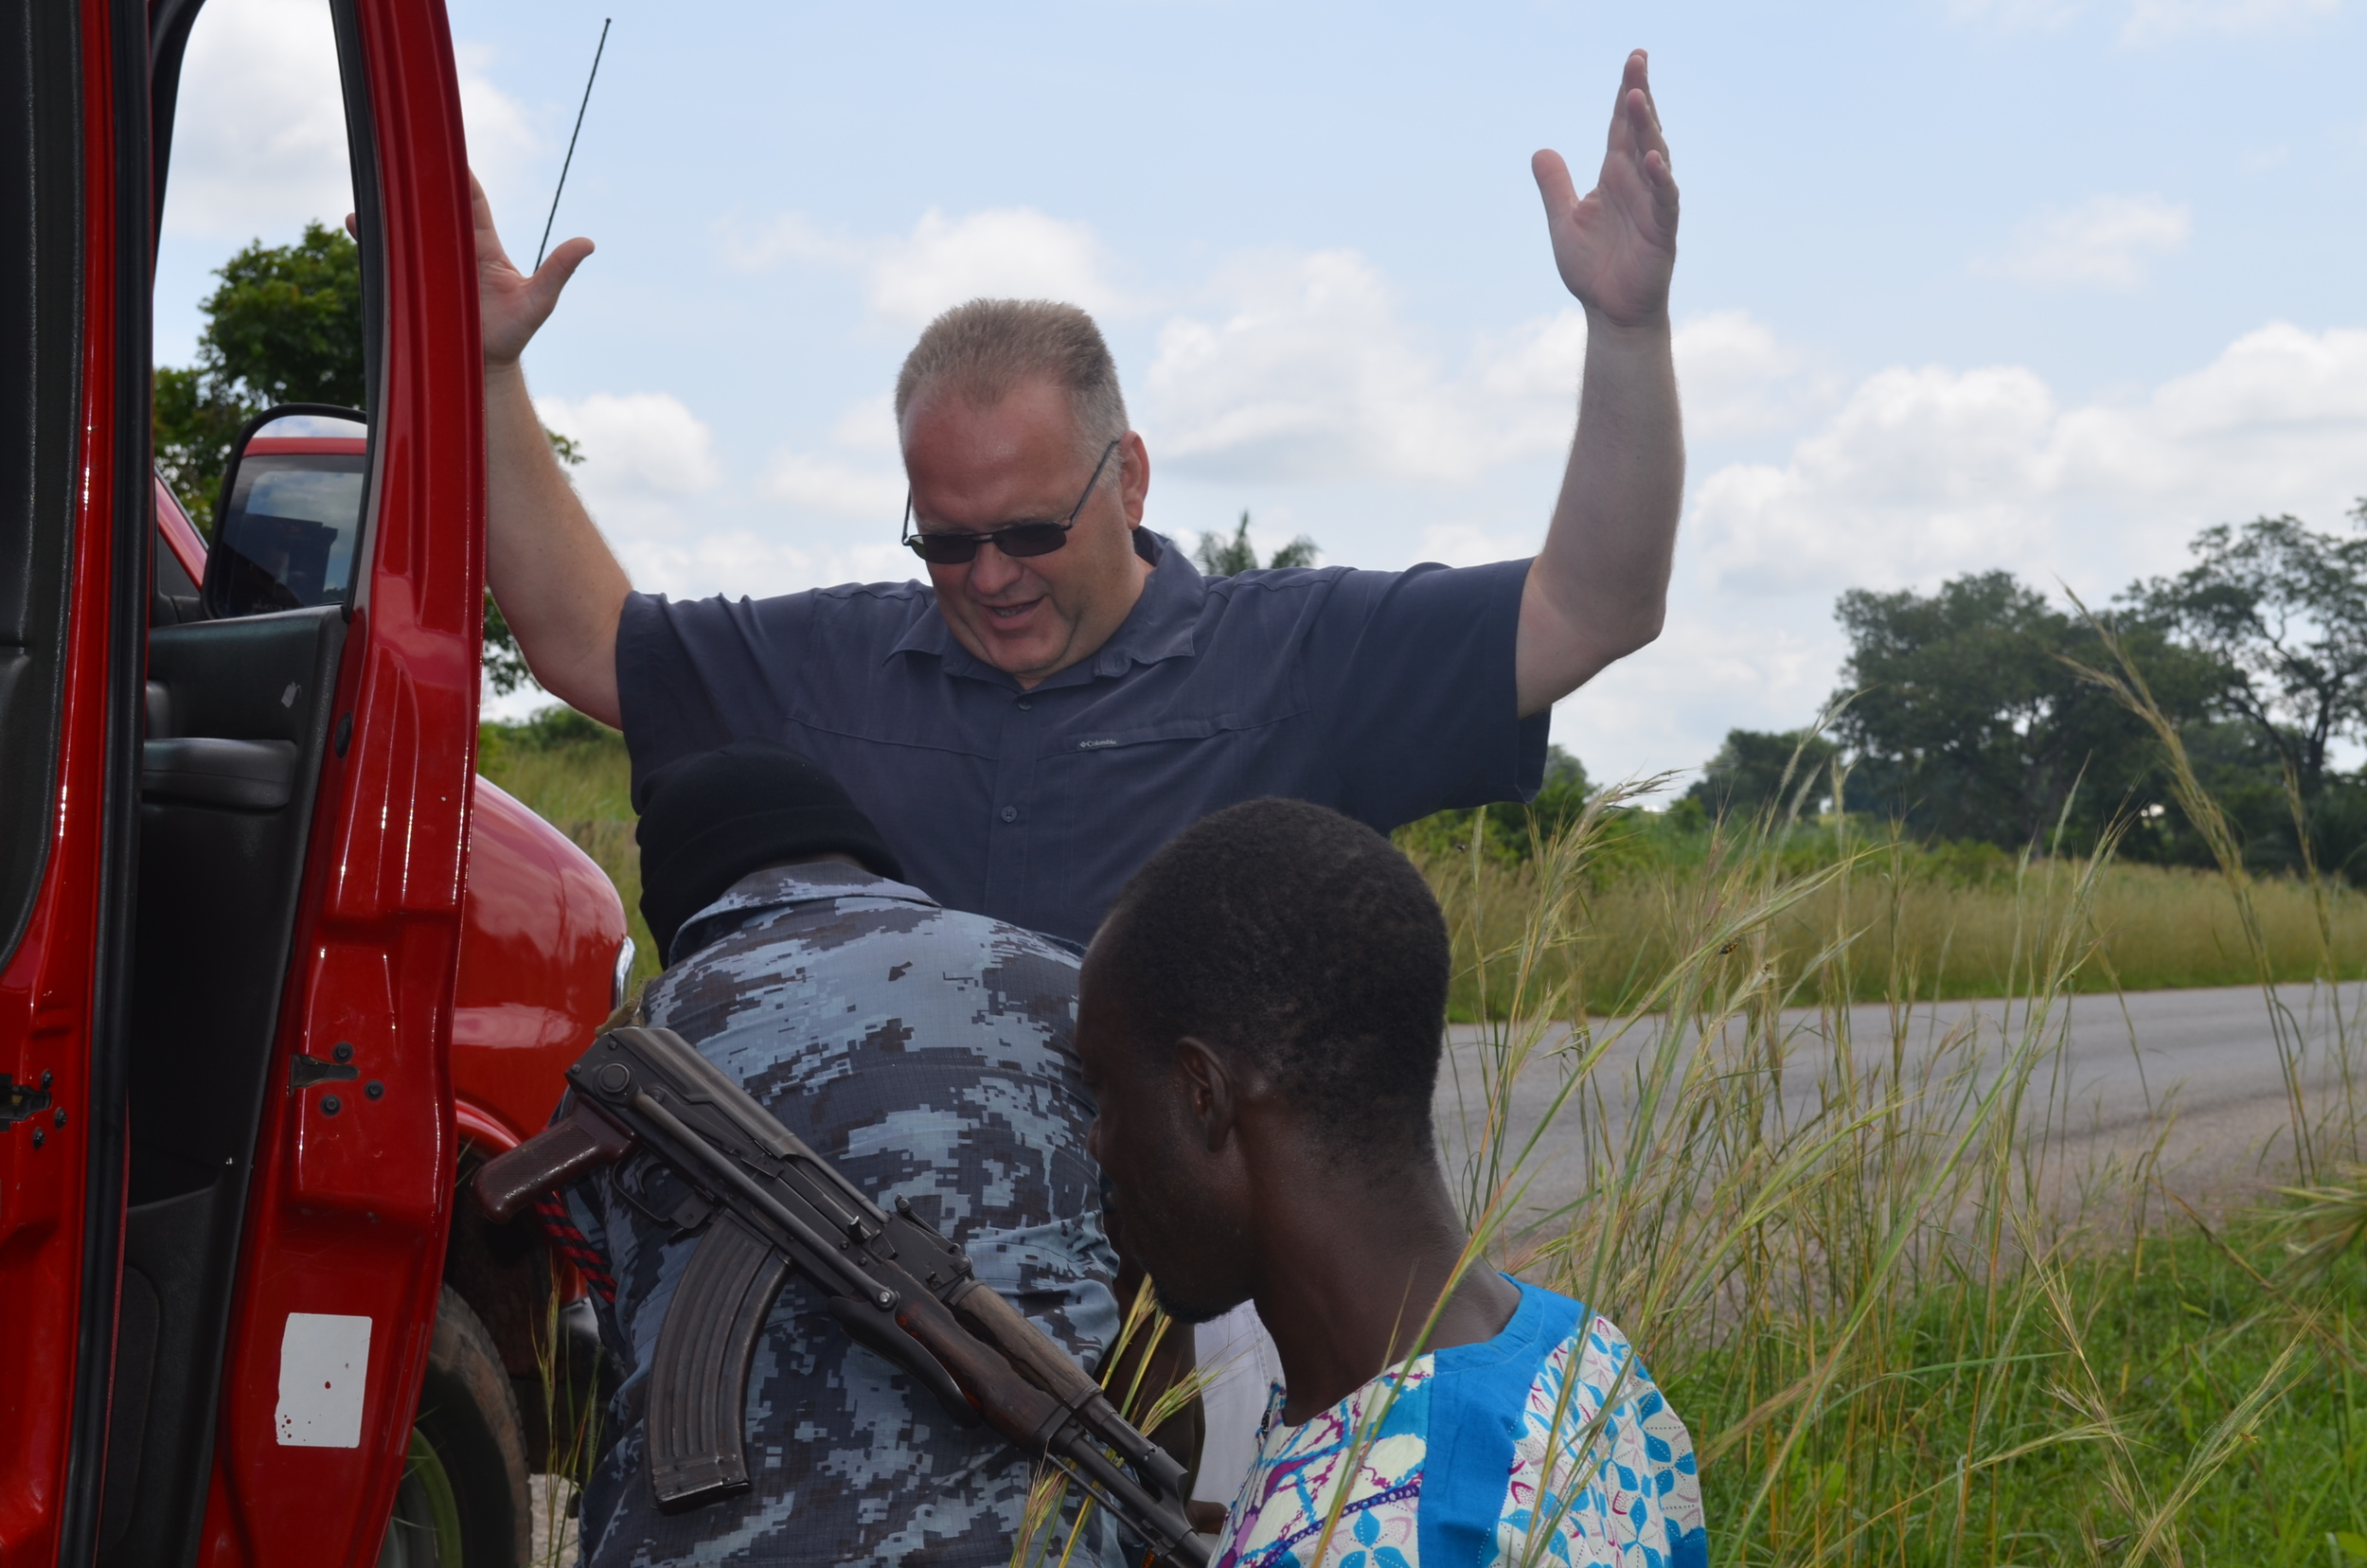 Police had a roadside stop where we were all patted down (I think they found their guy!)